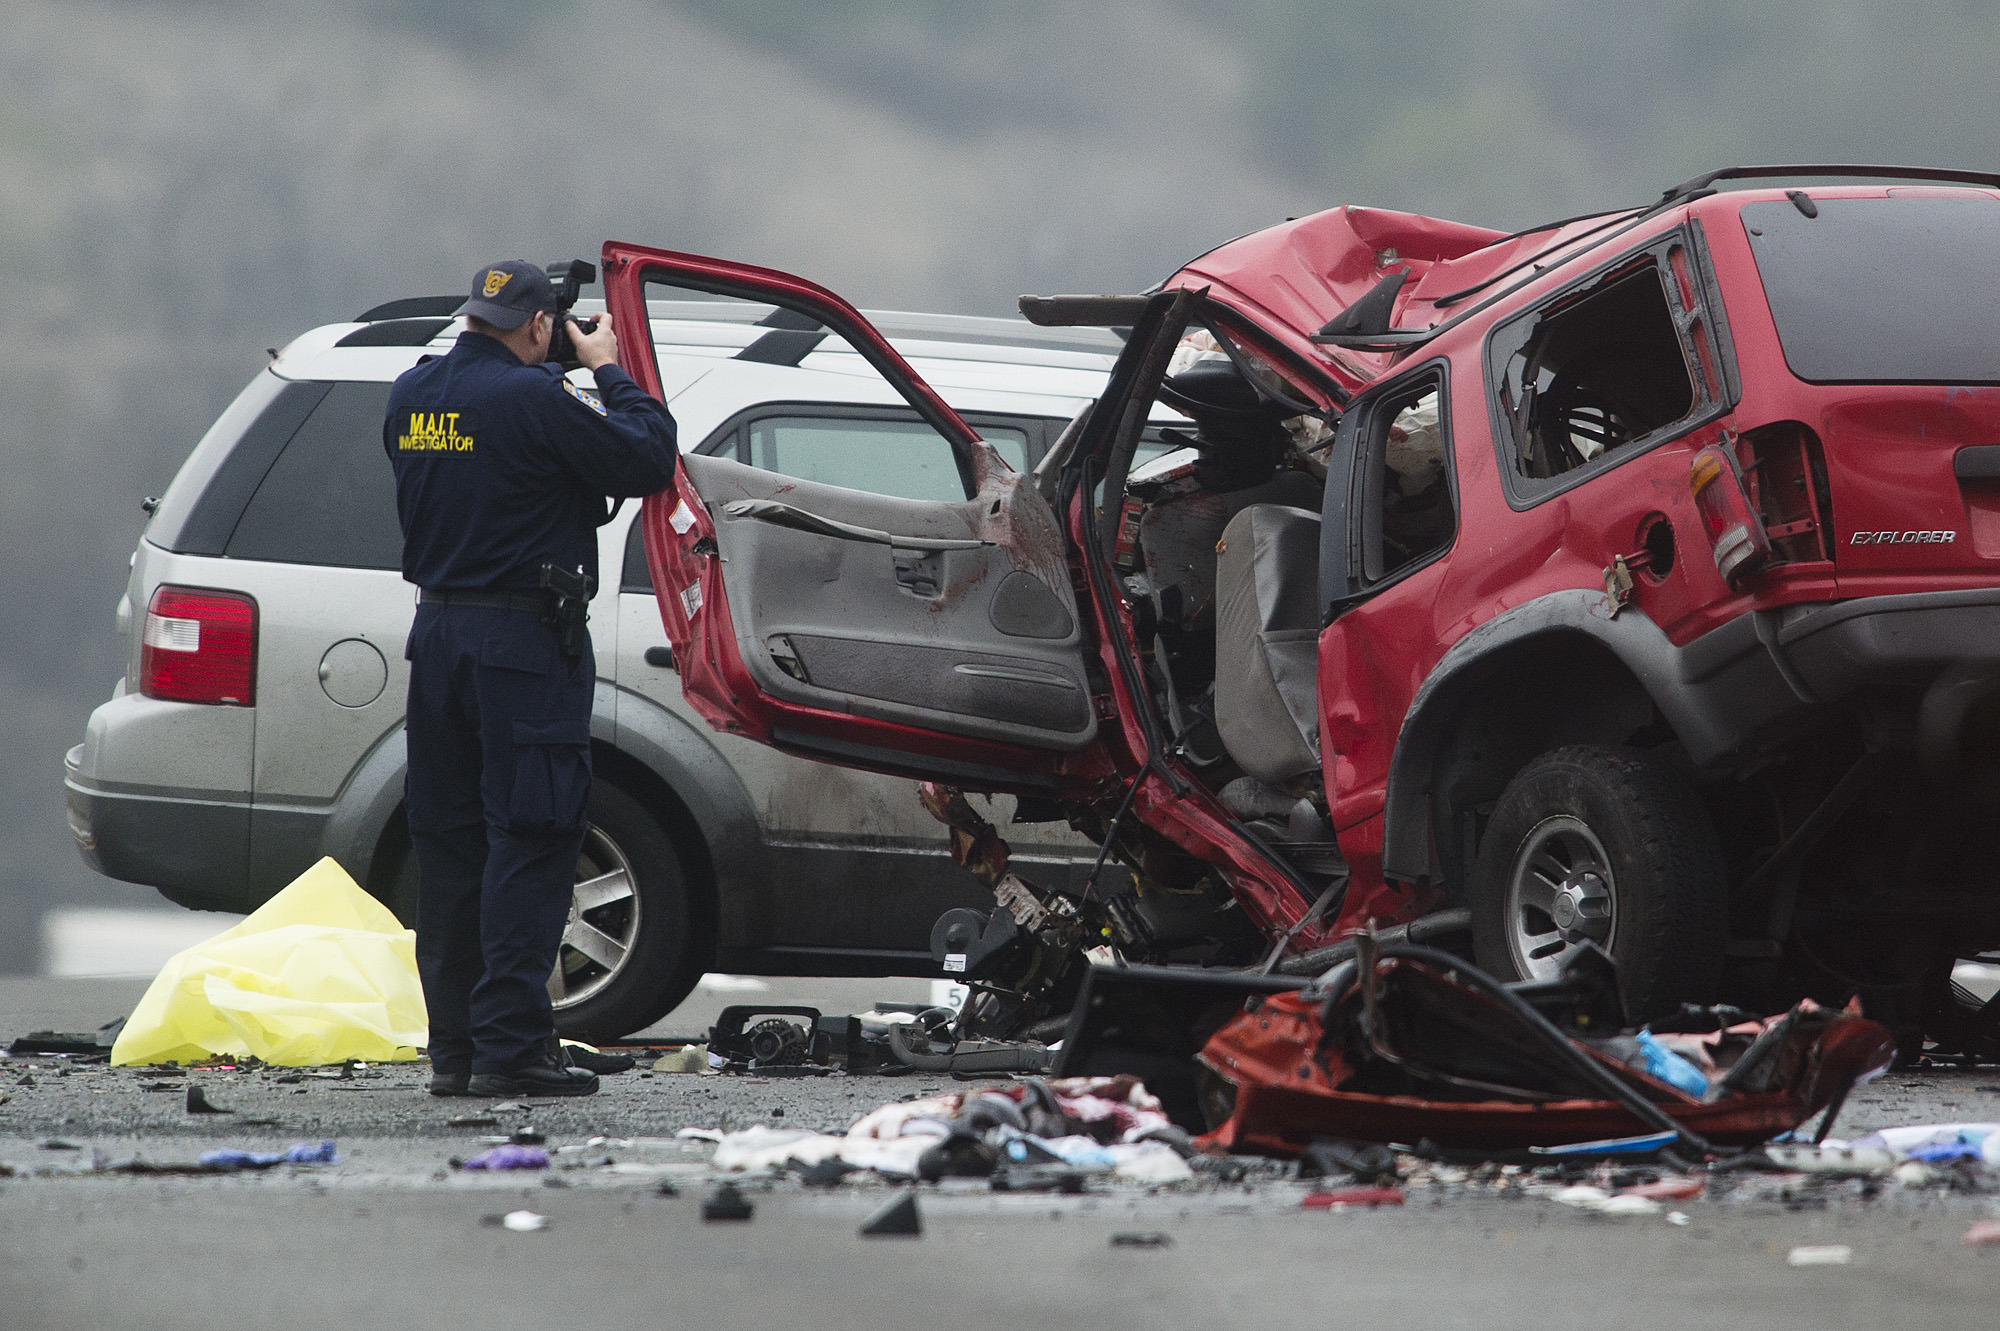 Officials investigate the scene of a multiple vehicle accident where 6 people were killed on the westbound Pomona Freeway in Diamond Bar, Calif. on Sunday morning, Feb. 9, 2013. Authorities say a wrong-way driver caused the pre-dawn crash that left six people dead.  (AP Photo/San Gabriel Valley Tribune,Watchara Phomicinda) MAGS OUT, NO SALES MANDATORY CREDIT